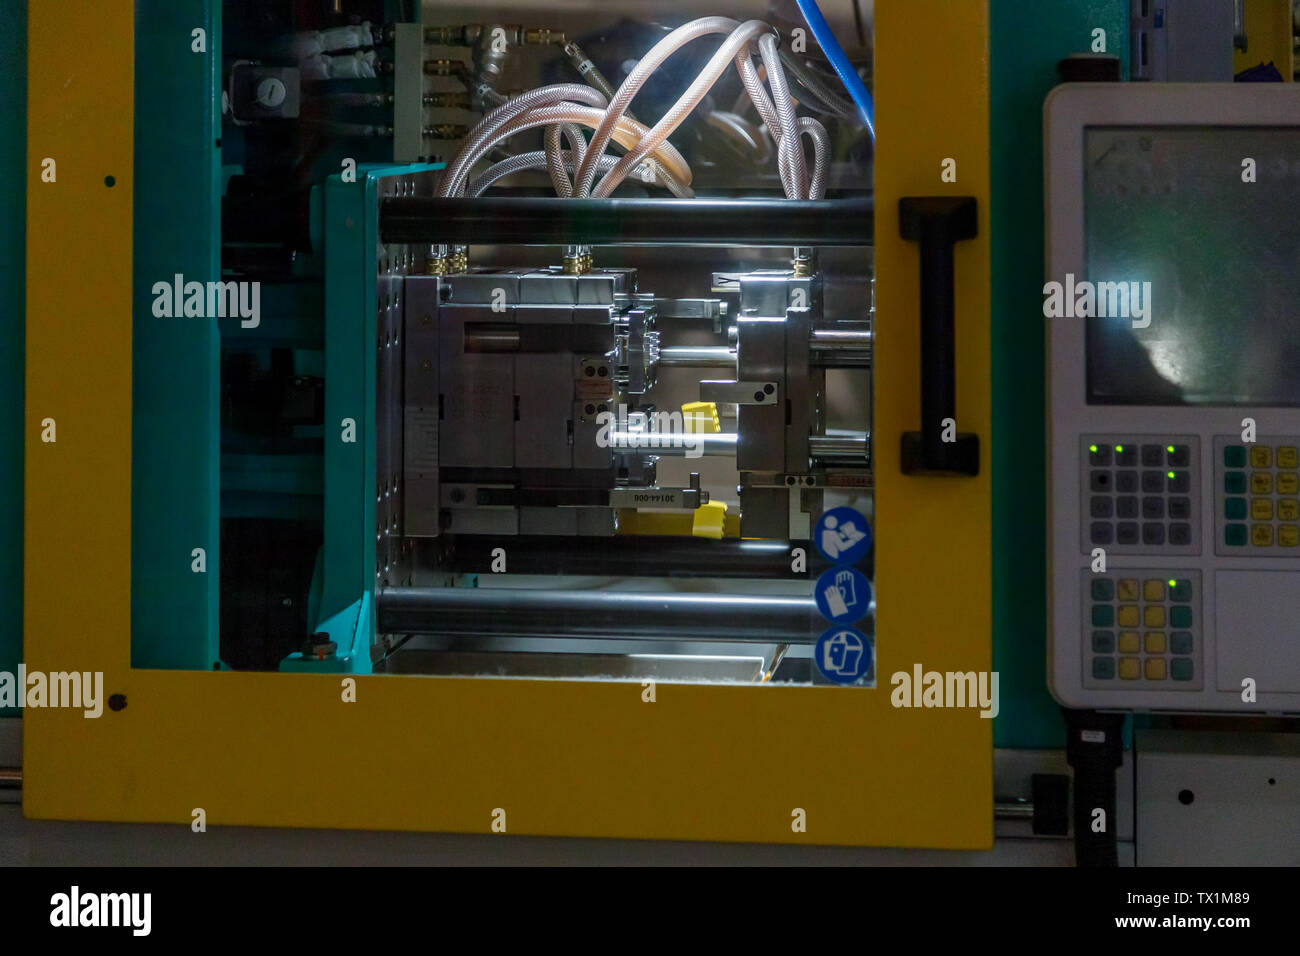 DUBAI, UAE, JANUARY 09, 2019: Process of forming bricks Lego using the plastic injection molding machine in Legoland - Stock Image